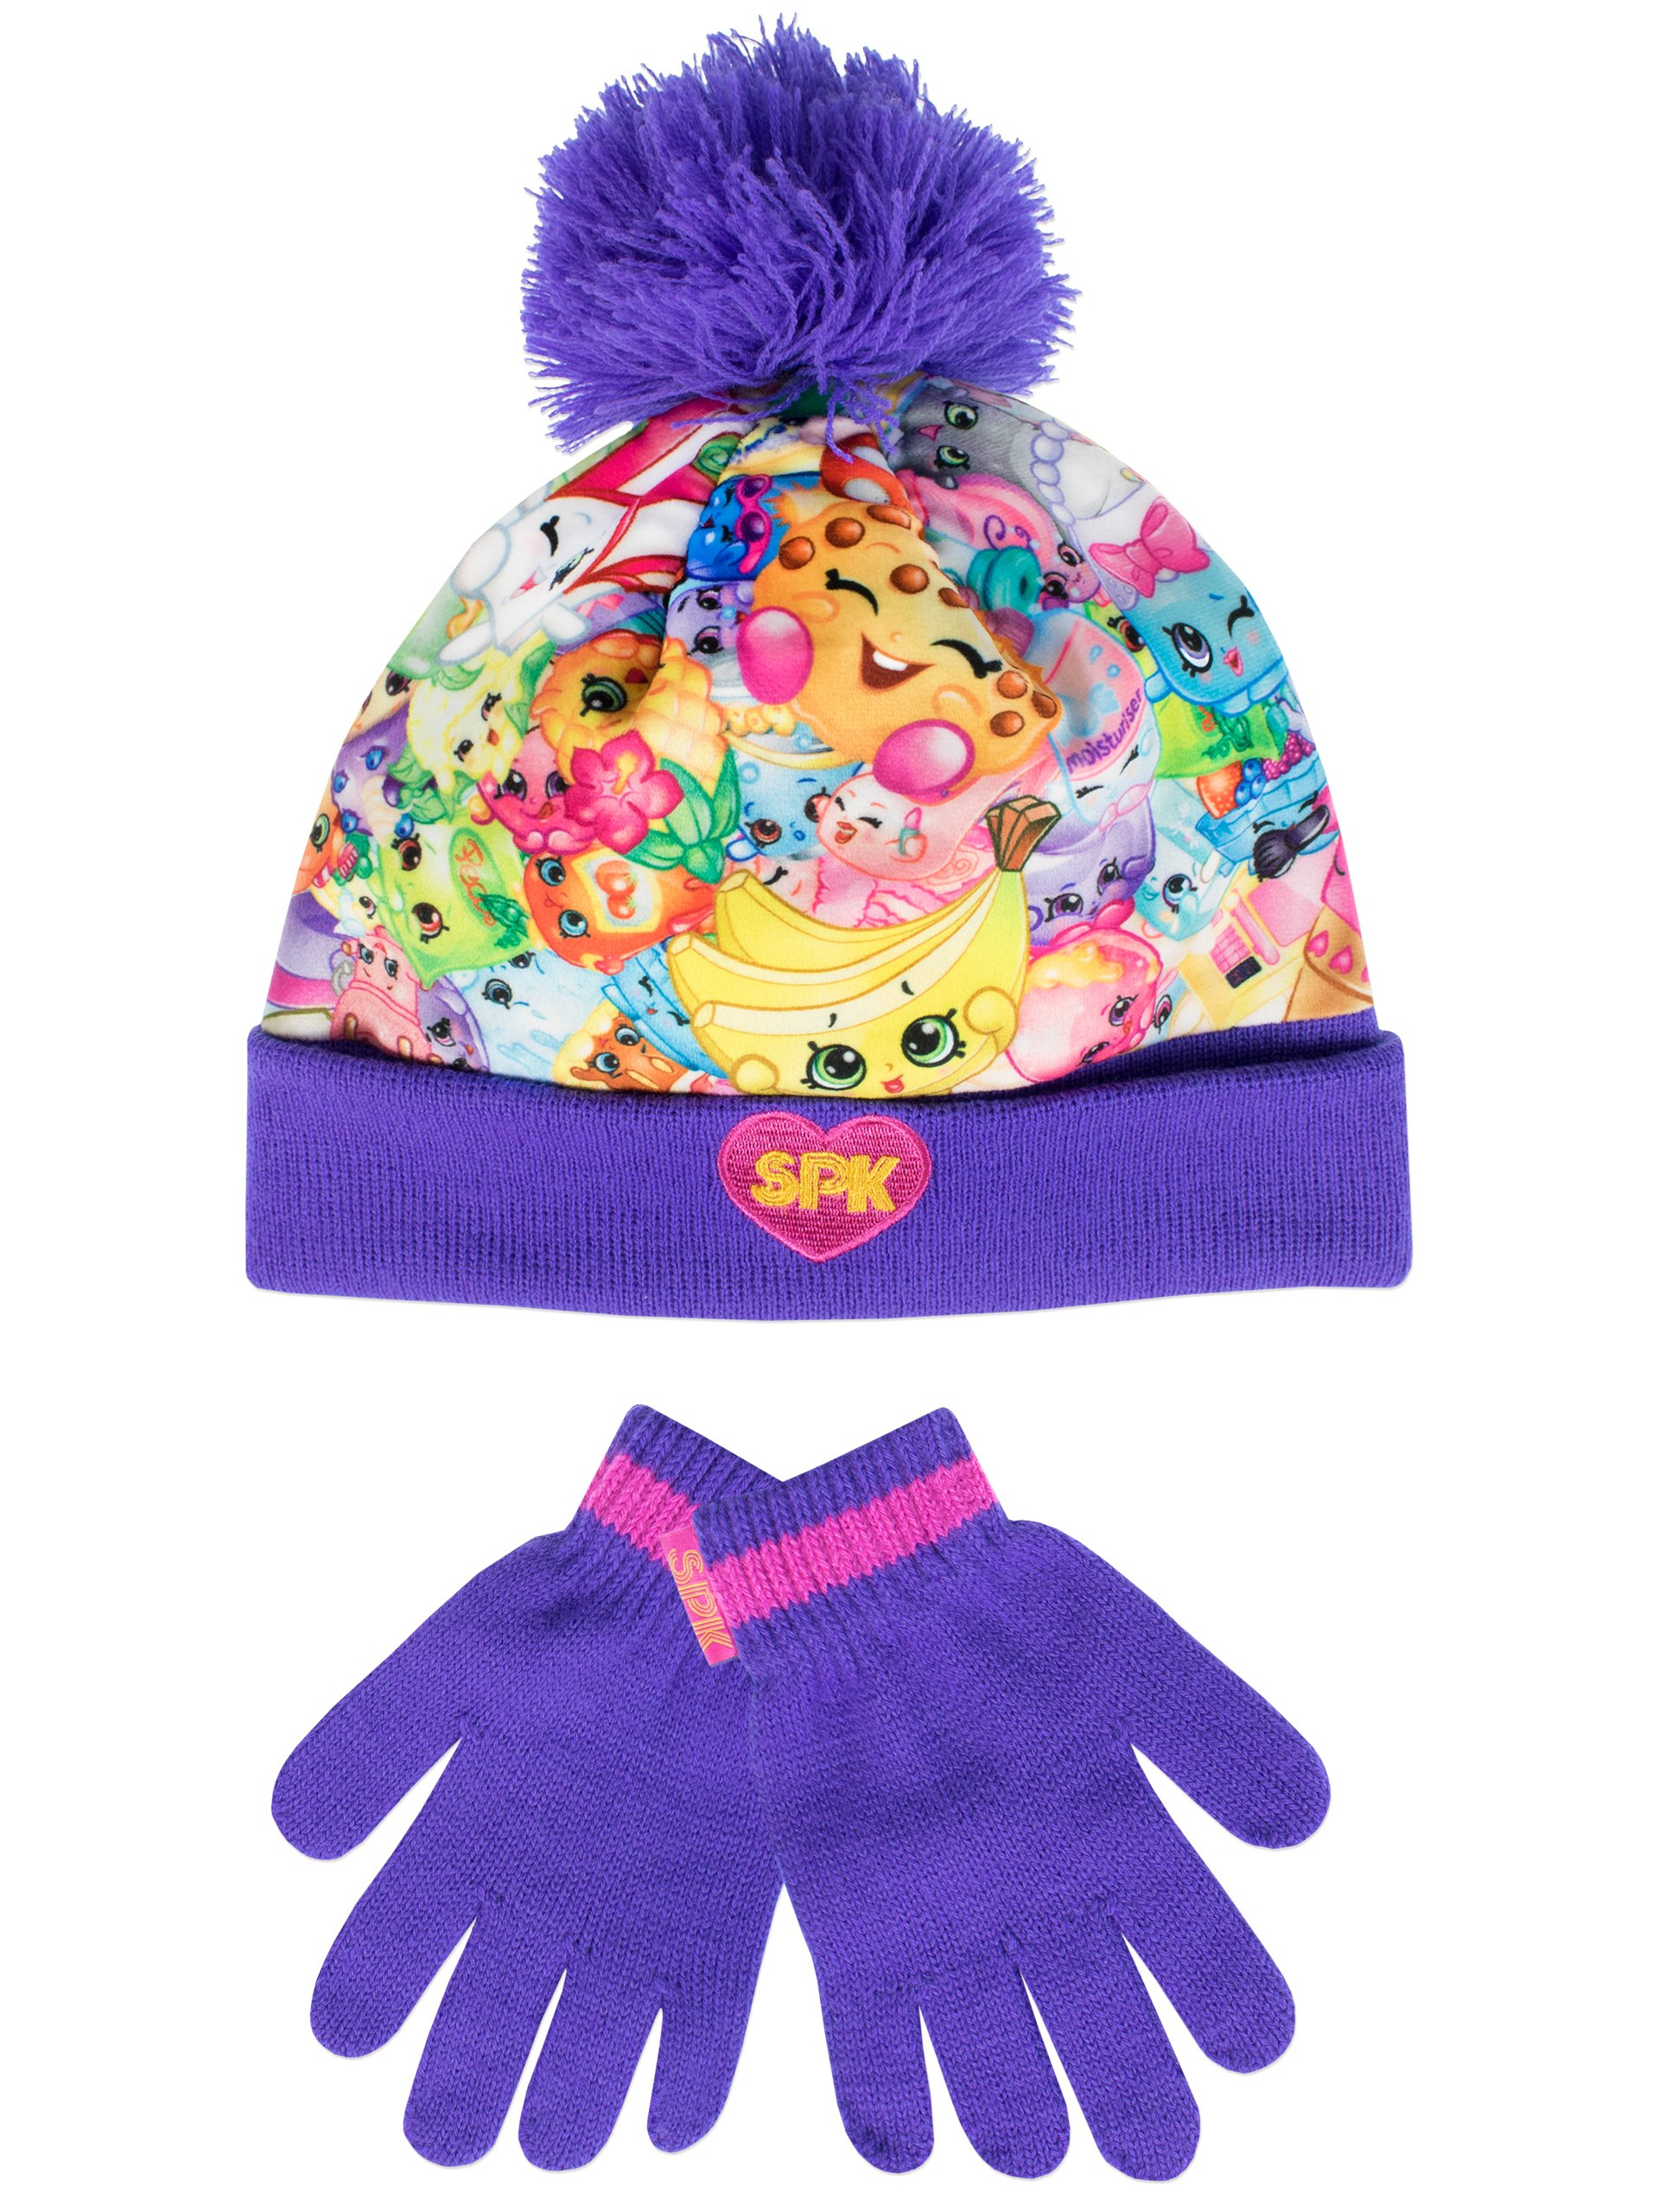 Shopkins Girls Hat and Gloves Set Size 8-10 Years